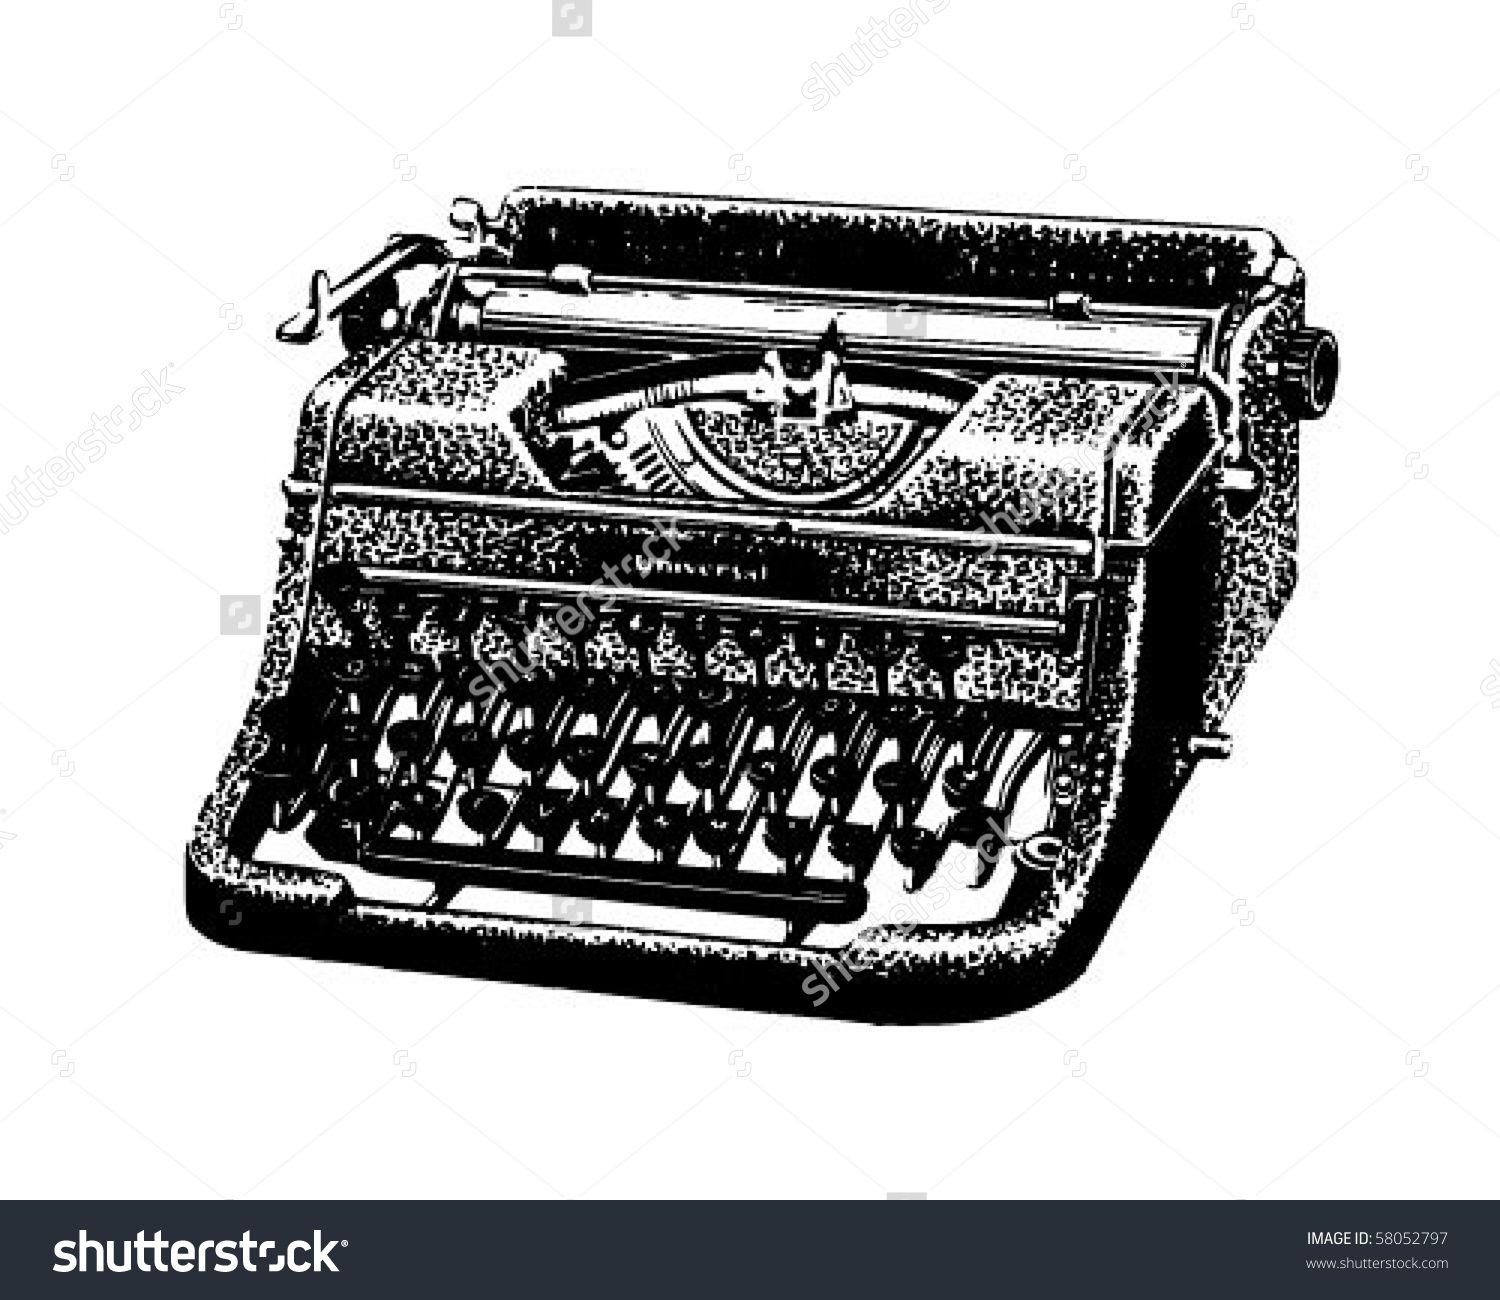 Image result for old fashioned typewriter logo.